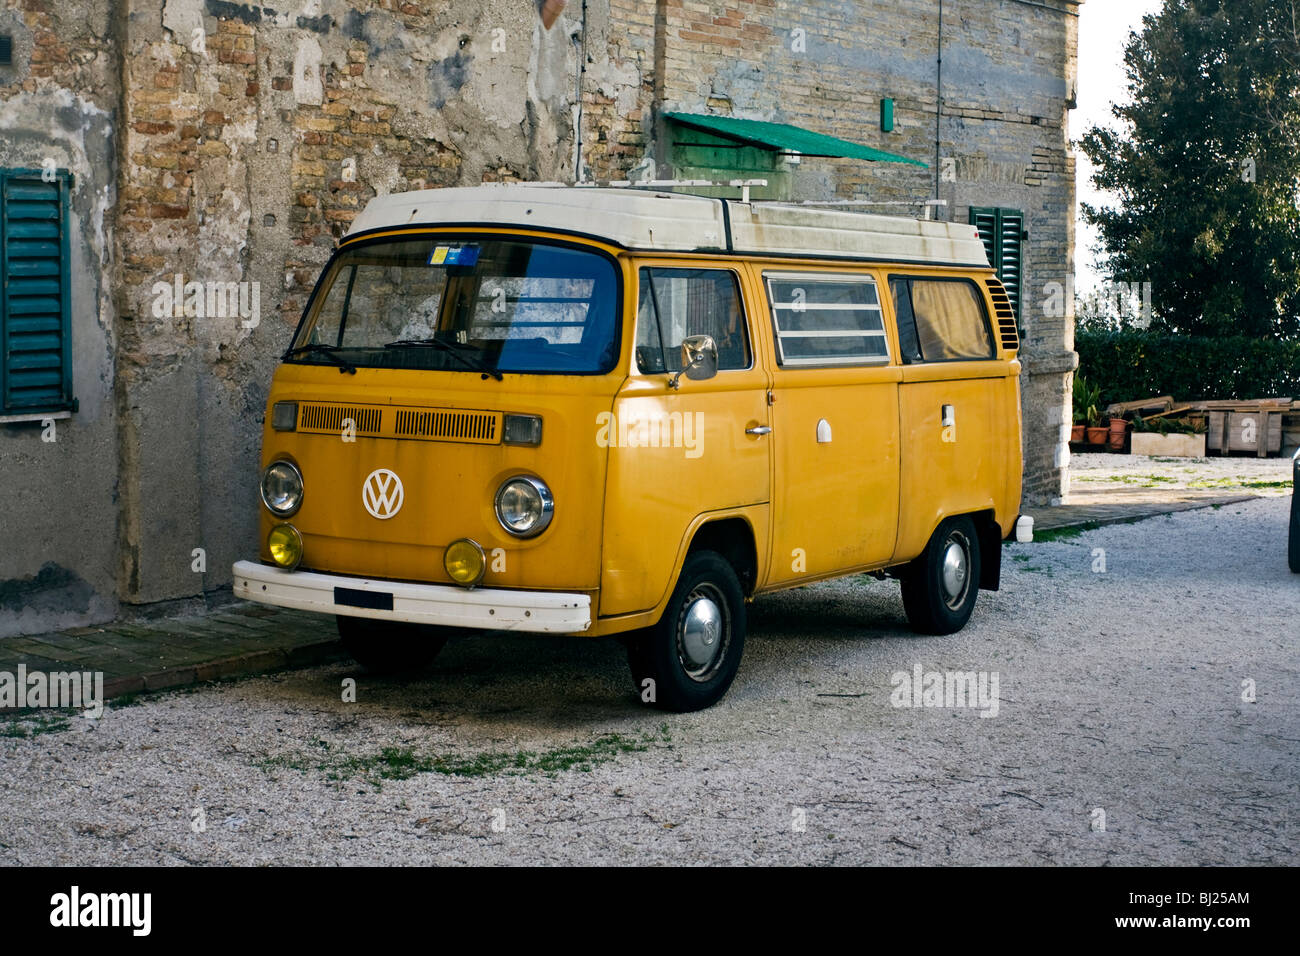 Volksvagen Beetle Bus T2 Vintage restored in Ancona, Marche Italy - Stock Image